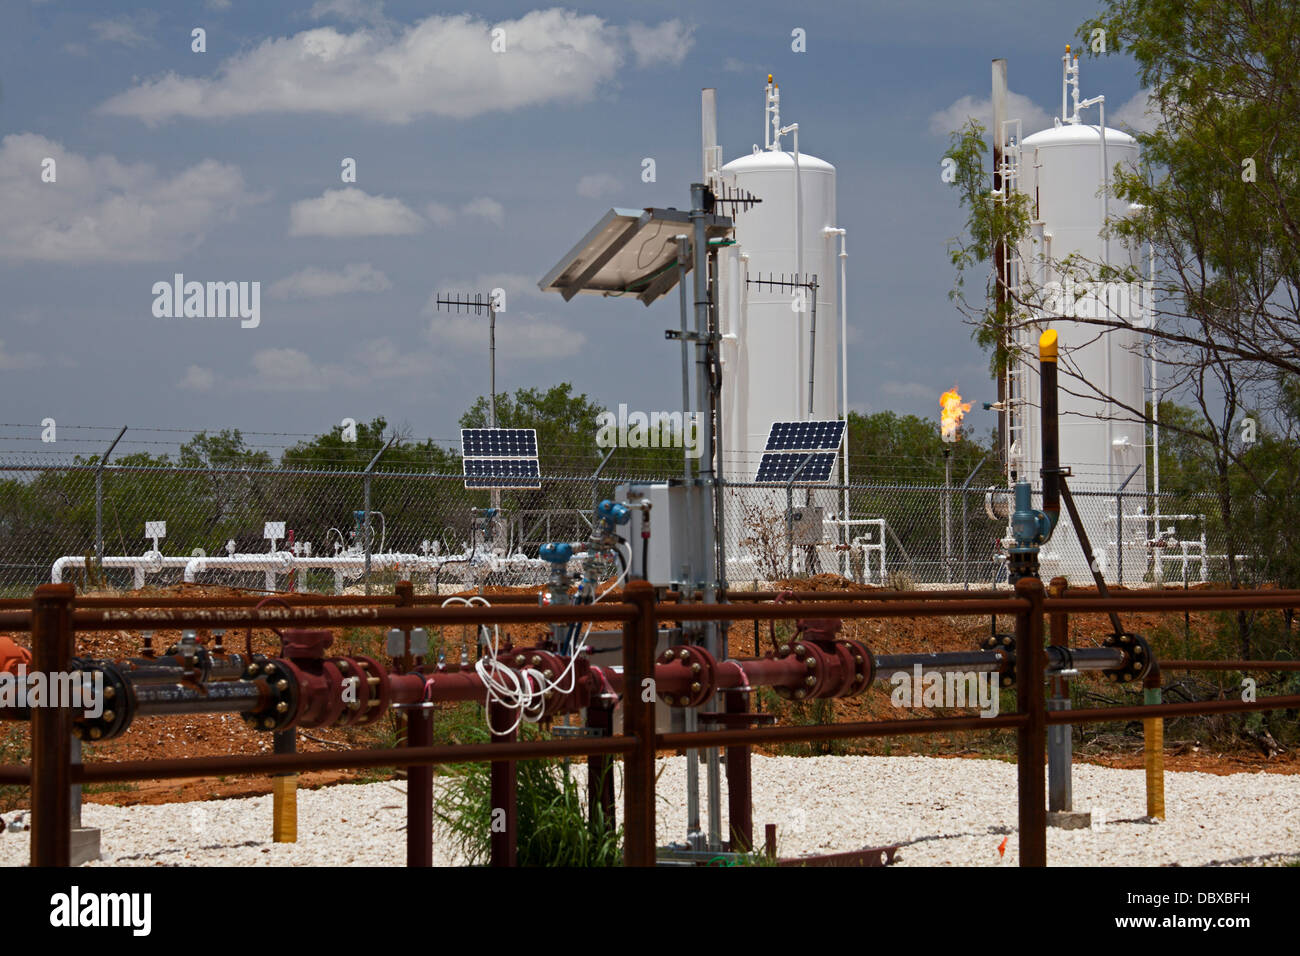 Millett, Texas - Natural gas is burned at a facility in the Eagle Ford Shale, an area of intensive oil and gas production. - Stock Image